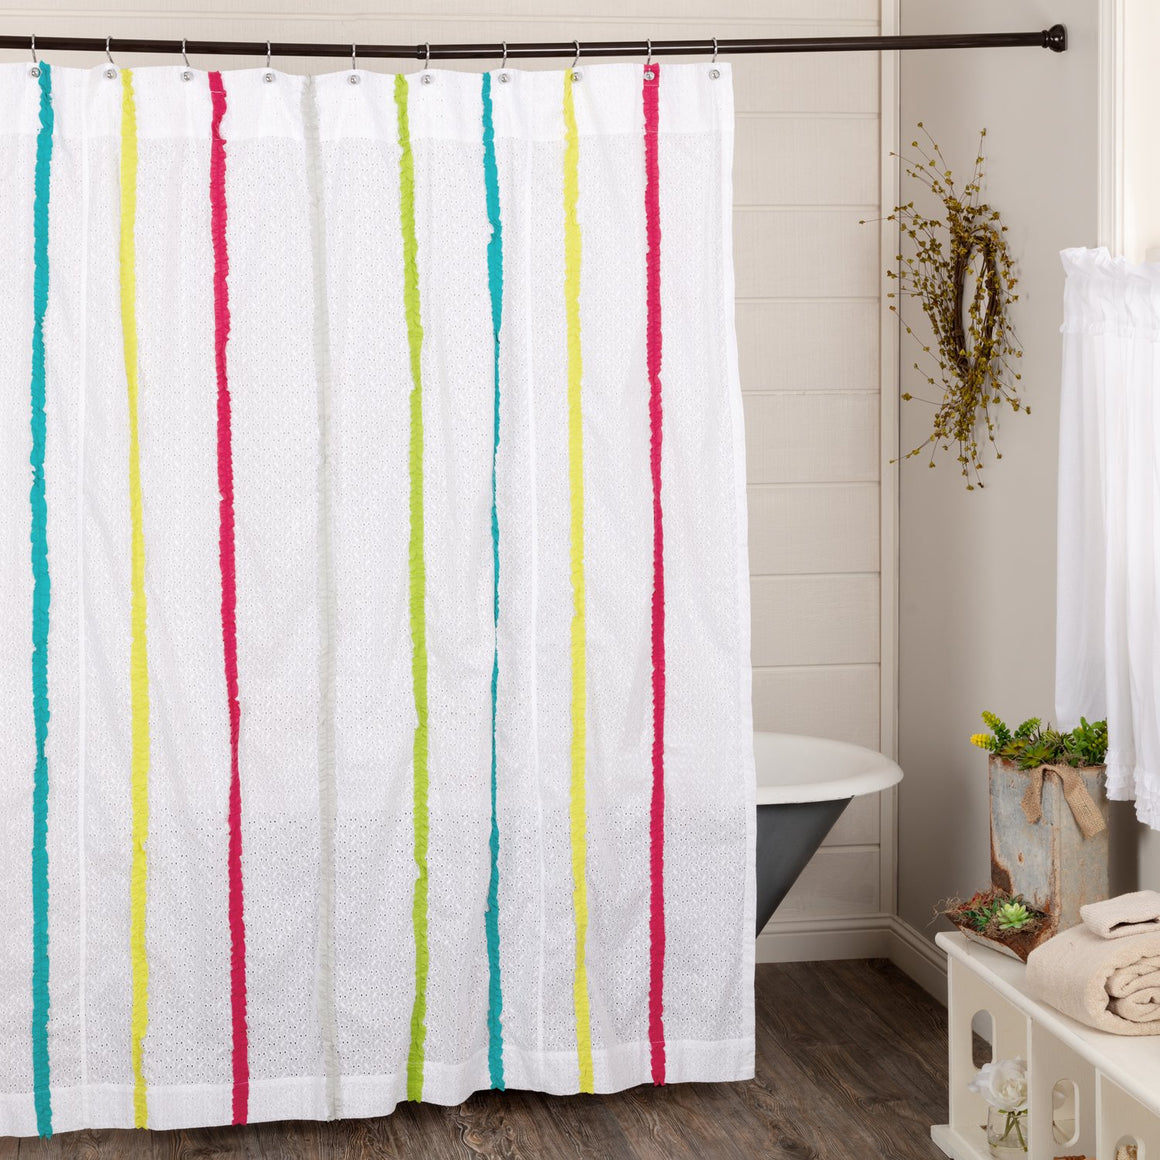 Everly Shower Curtain 72x72